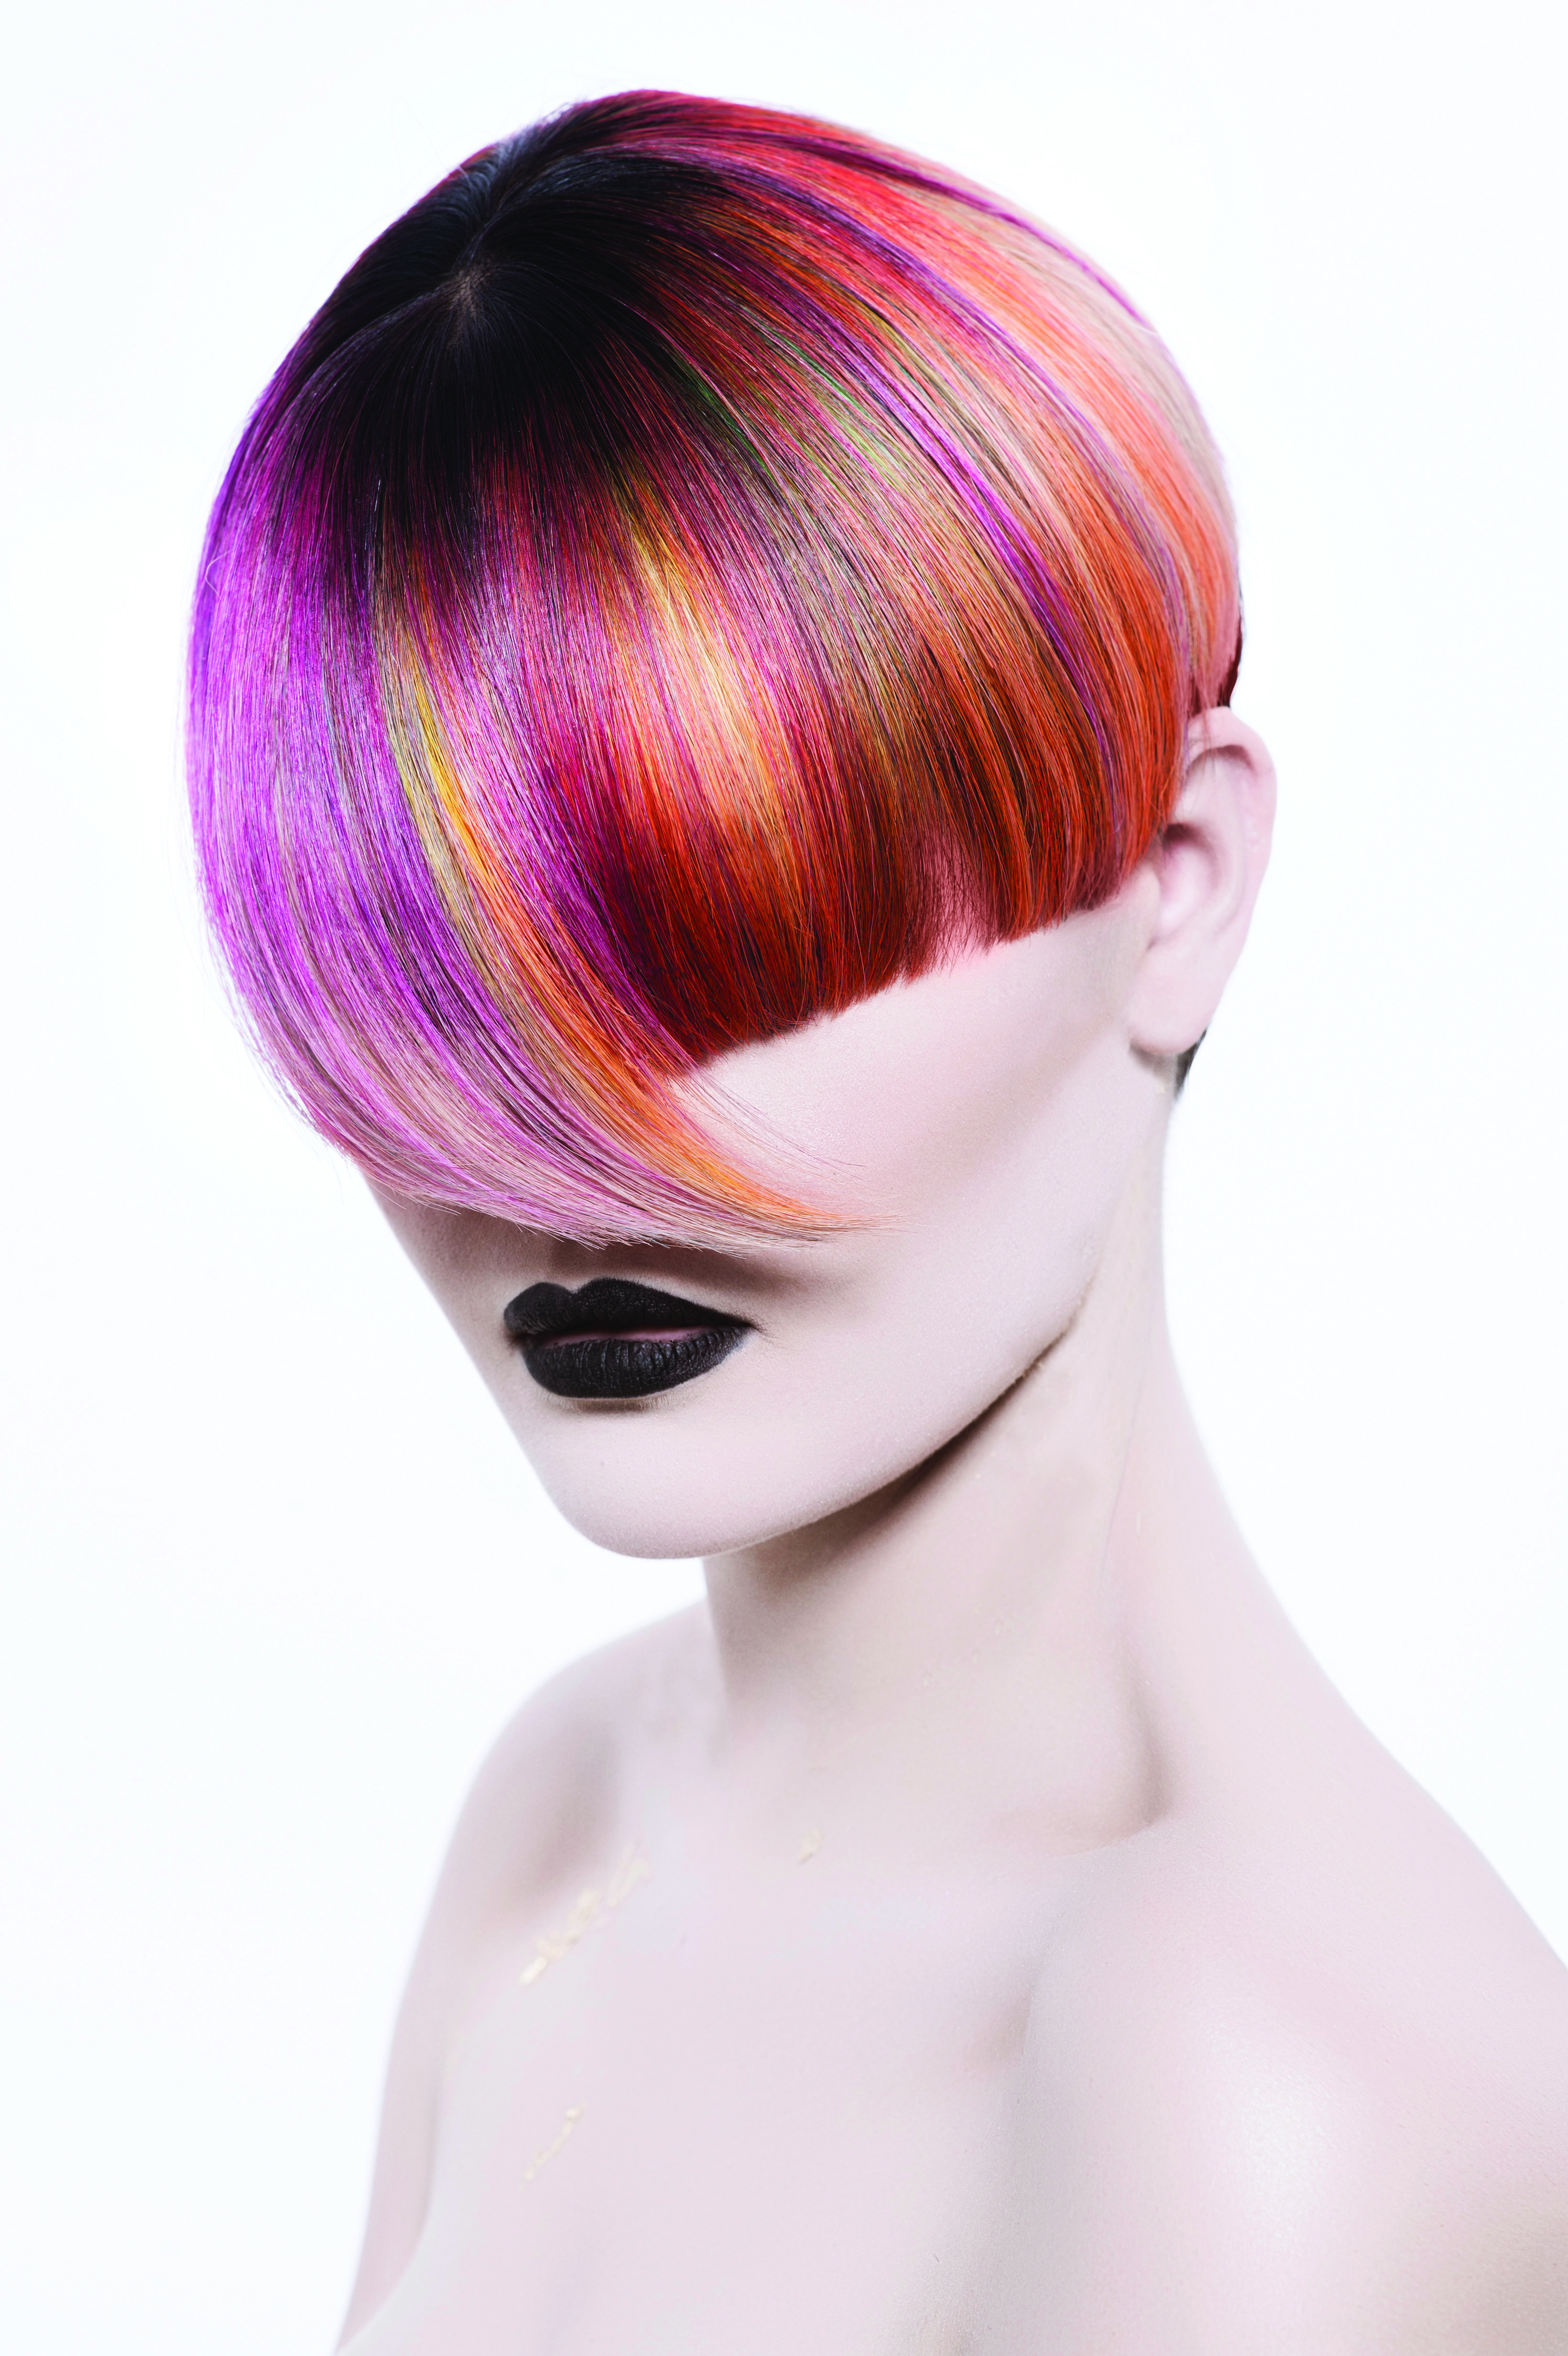 Gilded Geometric: Vertical Geometric Color from L'Anza